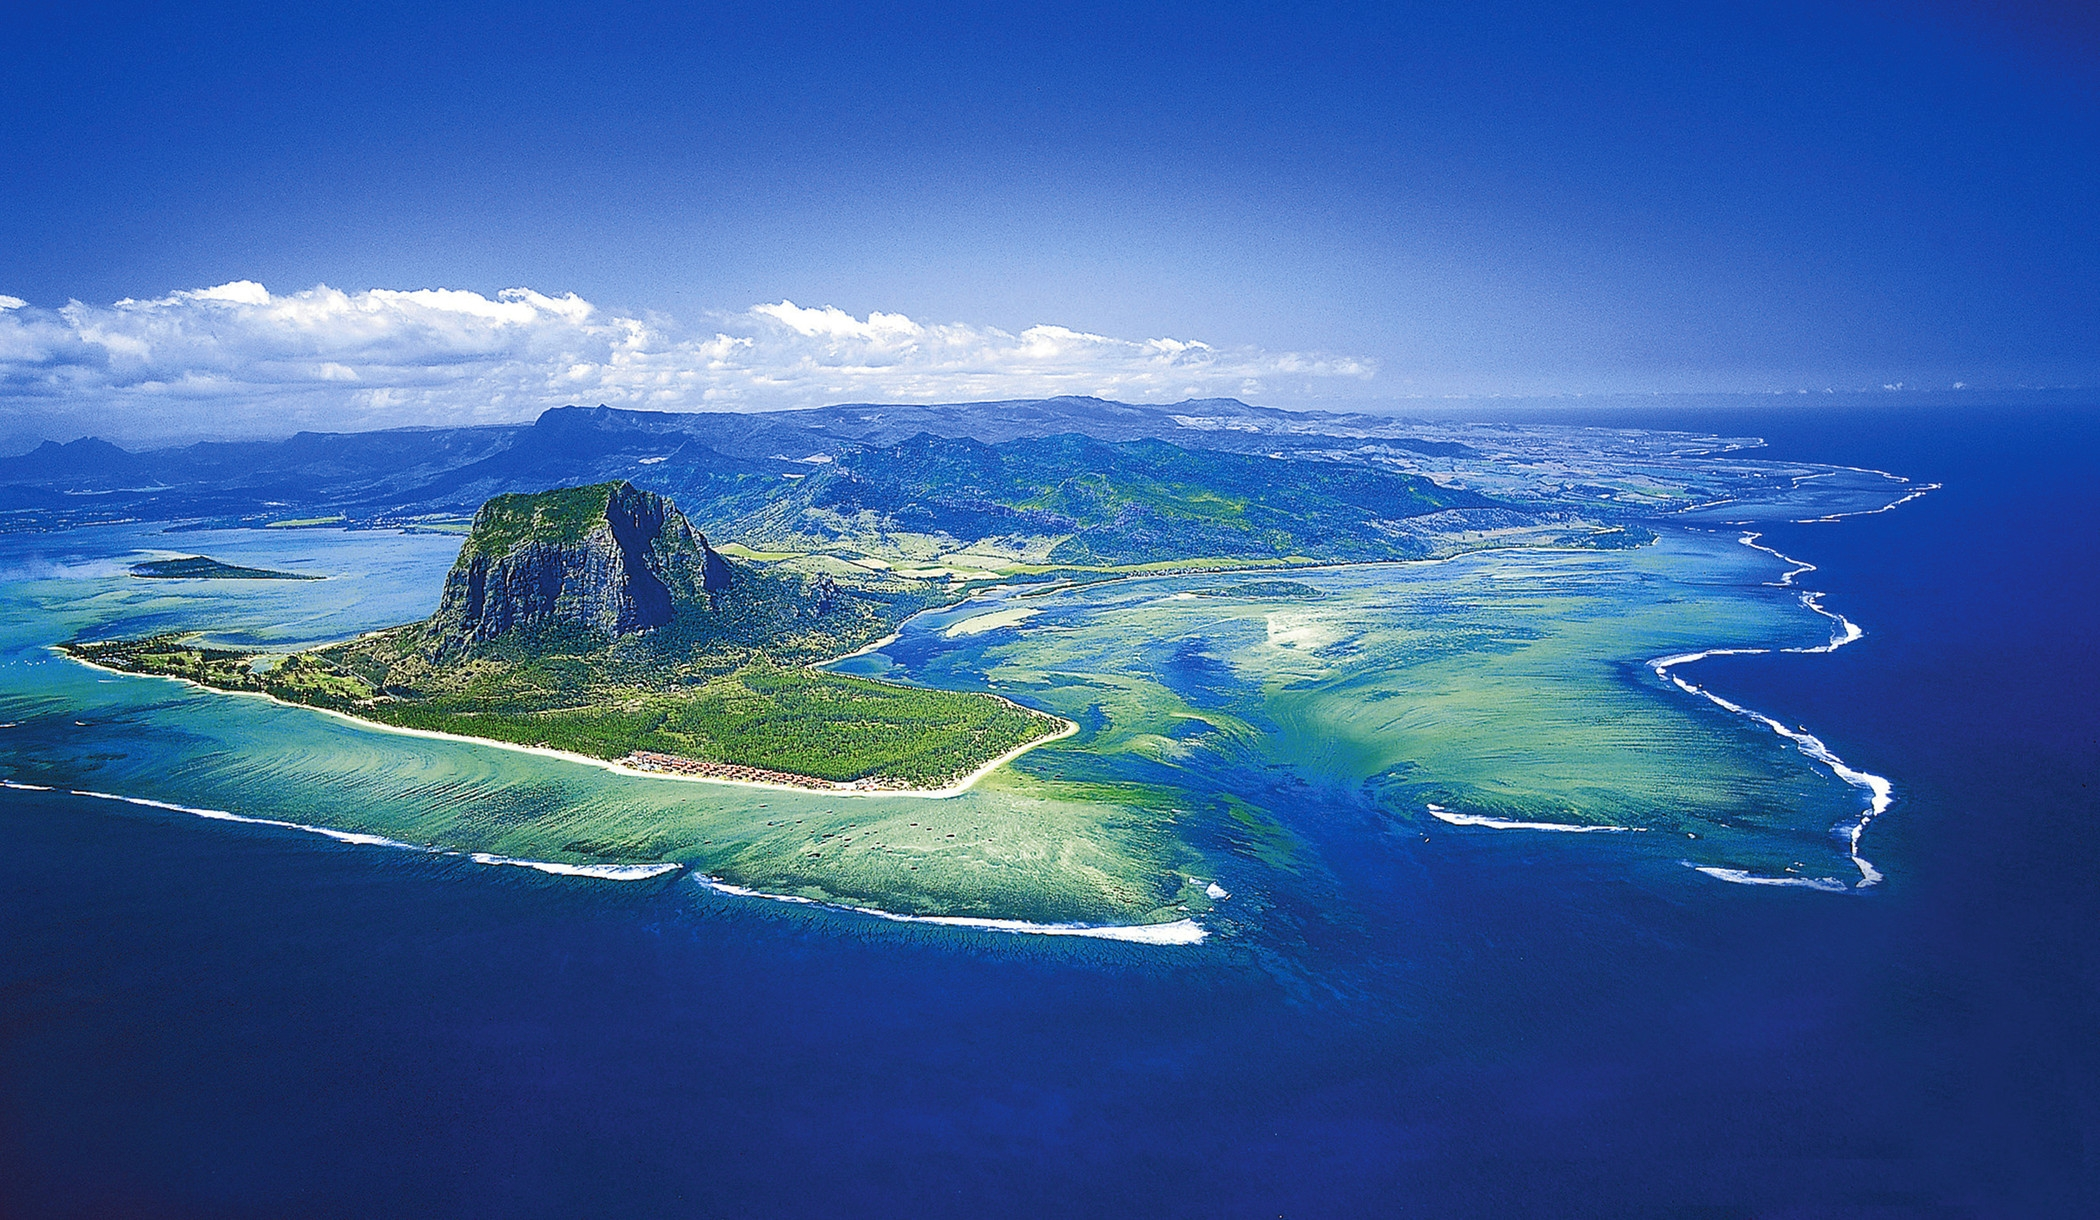 Underwater Waterfall of Mauritius Island